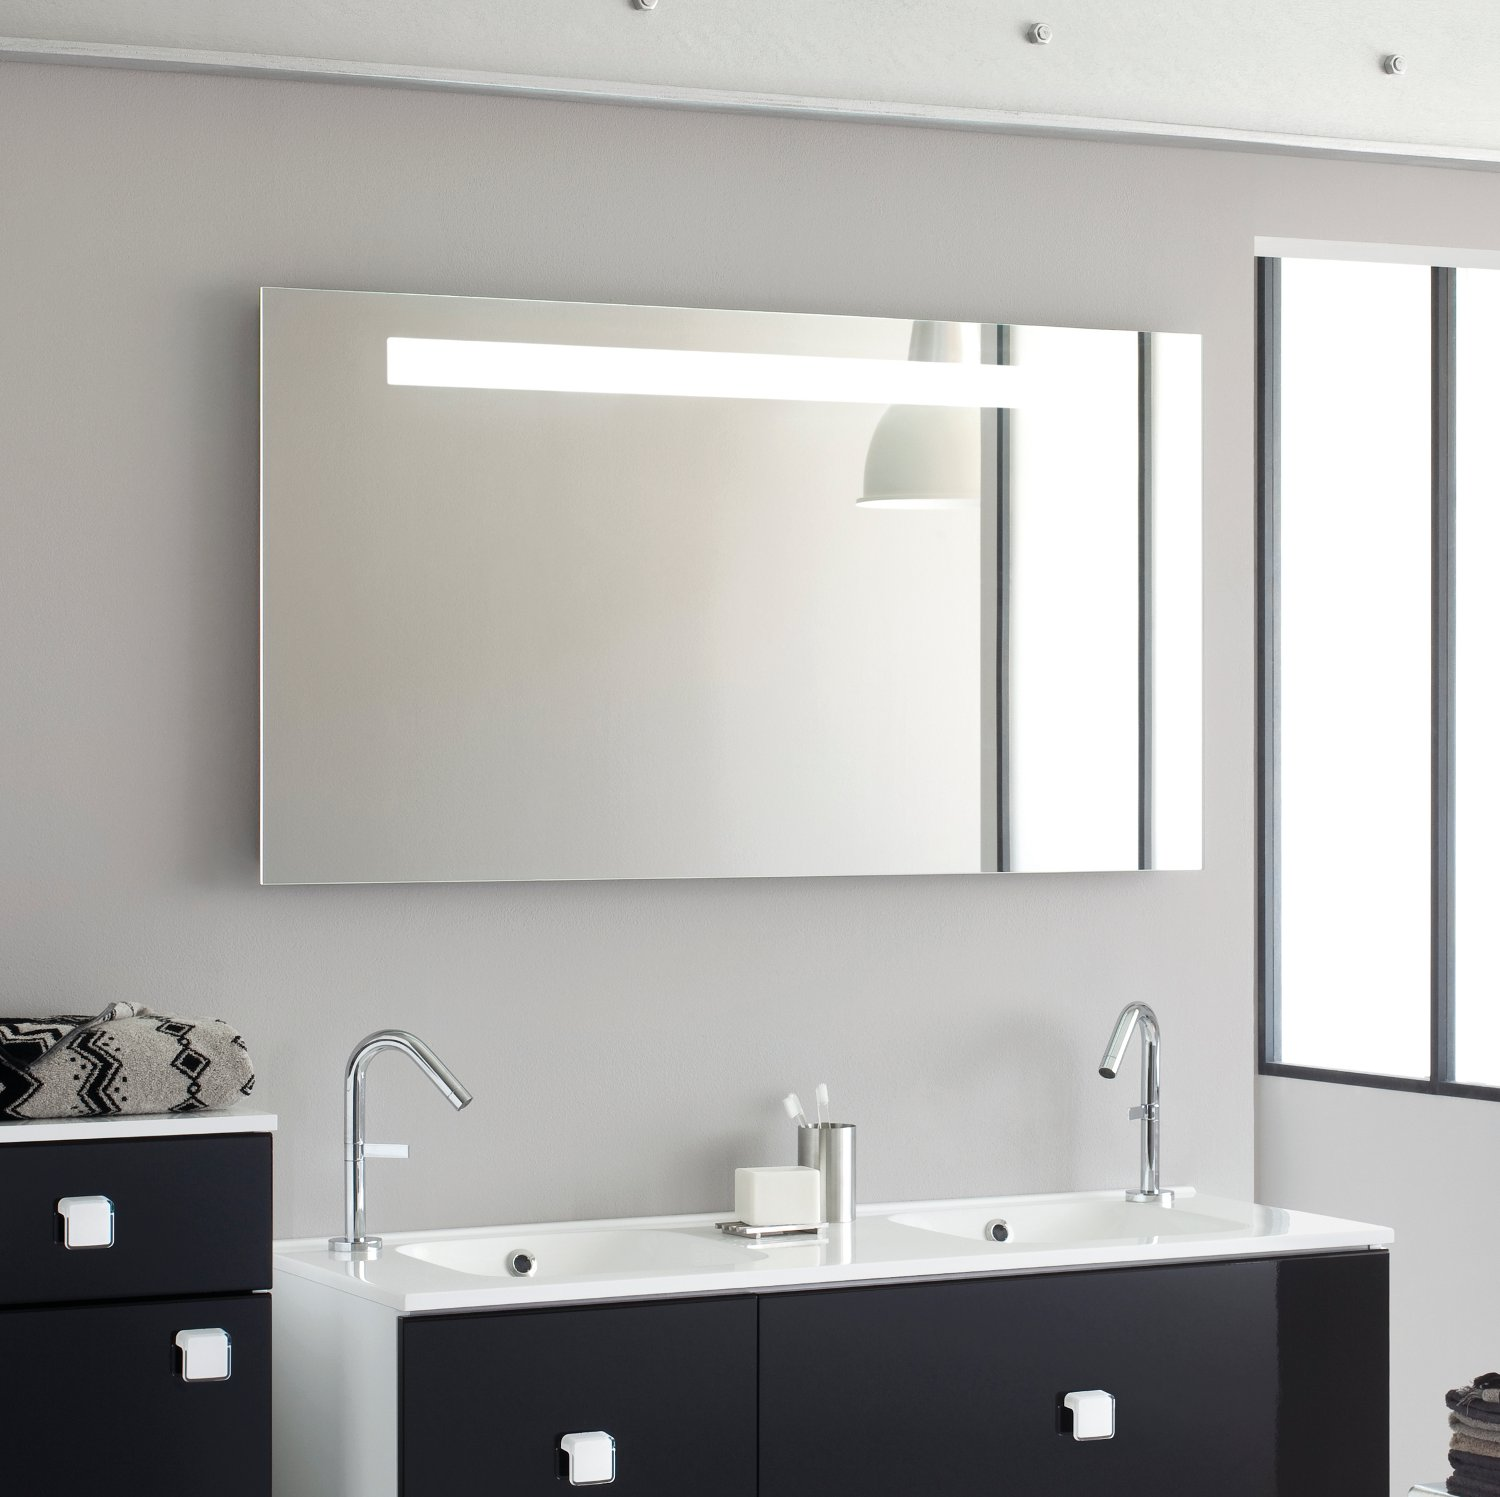 miroir salle de bain sanijura reflet sens d co et saveurs. Black Bedroom Furniture Sets. Home Design Ideas